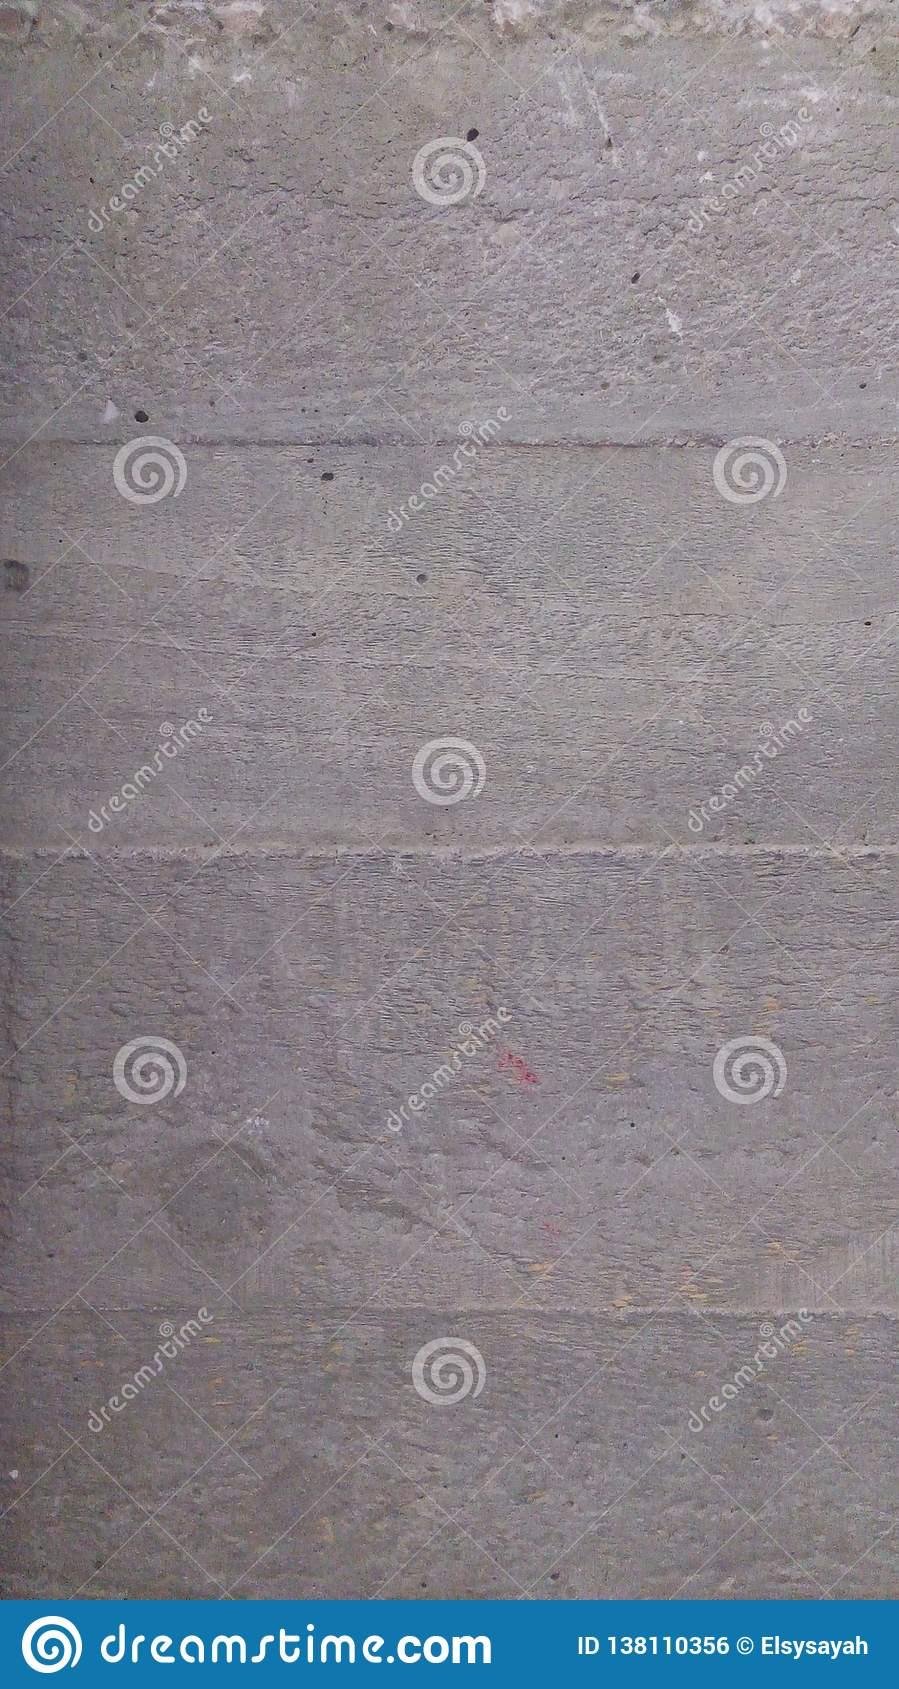 Concrete tile stock photo  Image of walls, smooth, layer